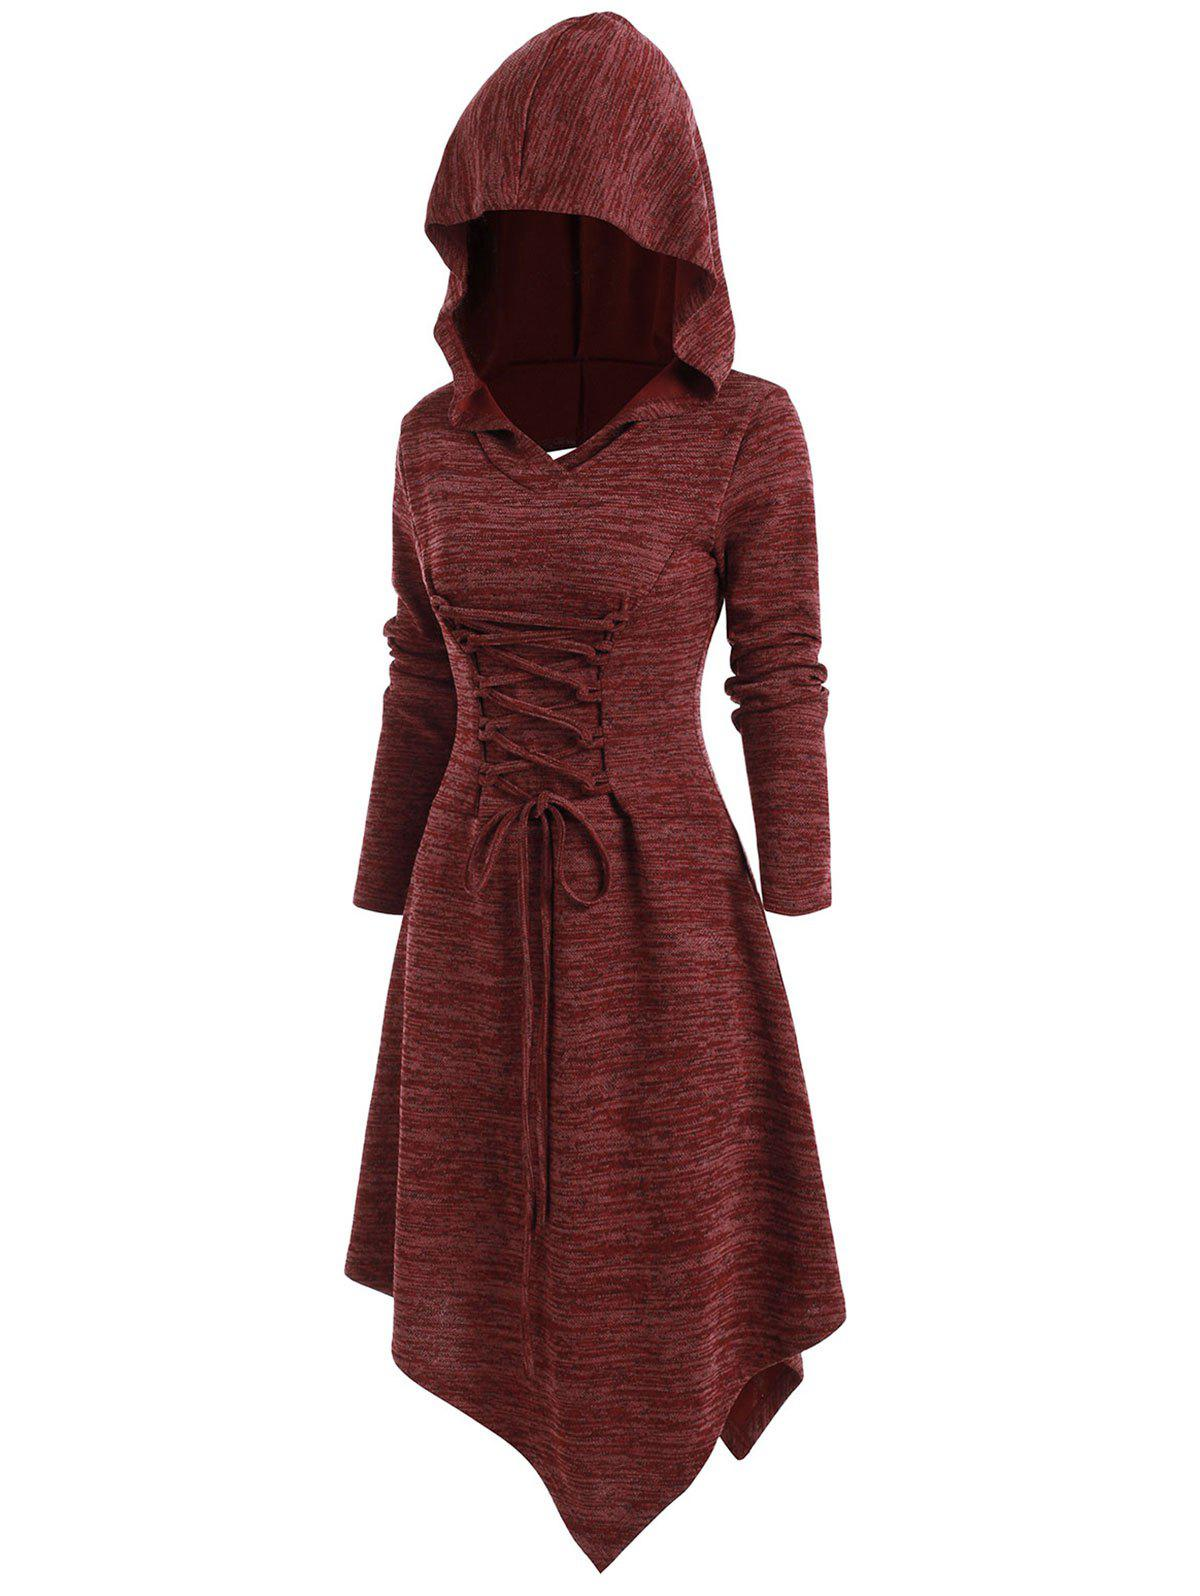 Online Lace Up Cut Out Asymmetric Hooded Dress